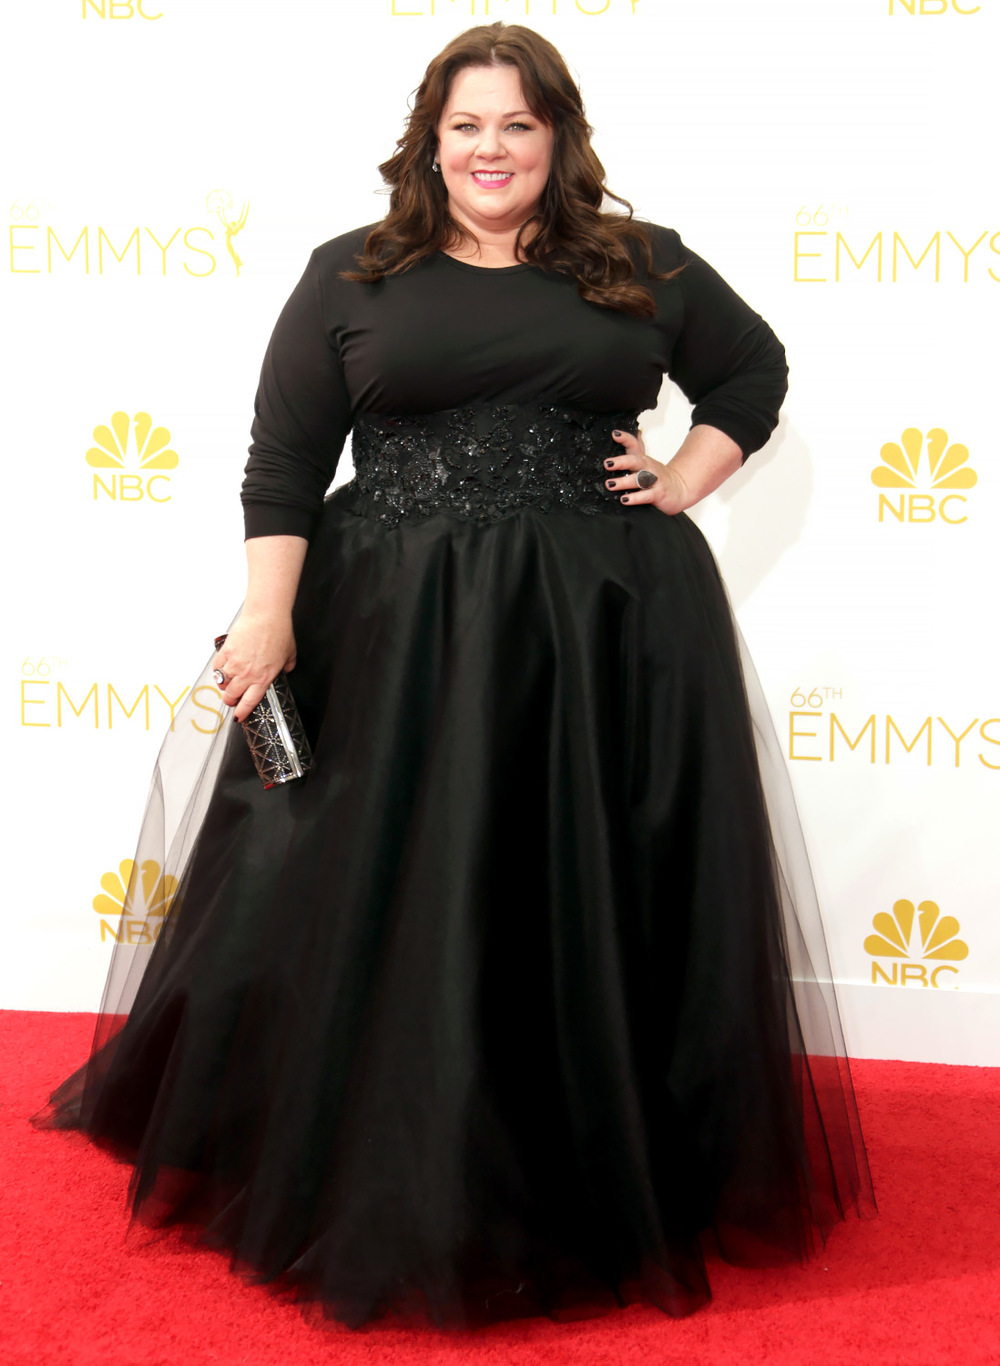 Melissa McCartney in Marchesa at the Emmys